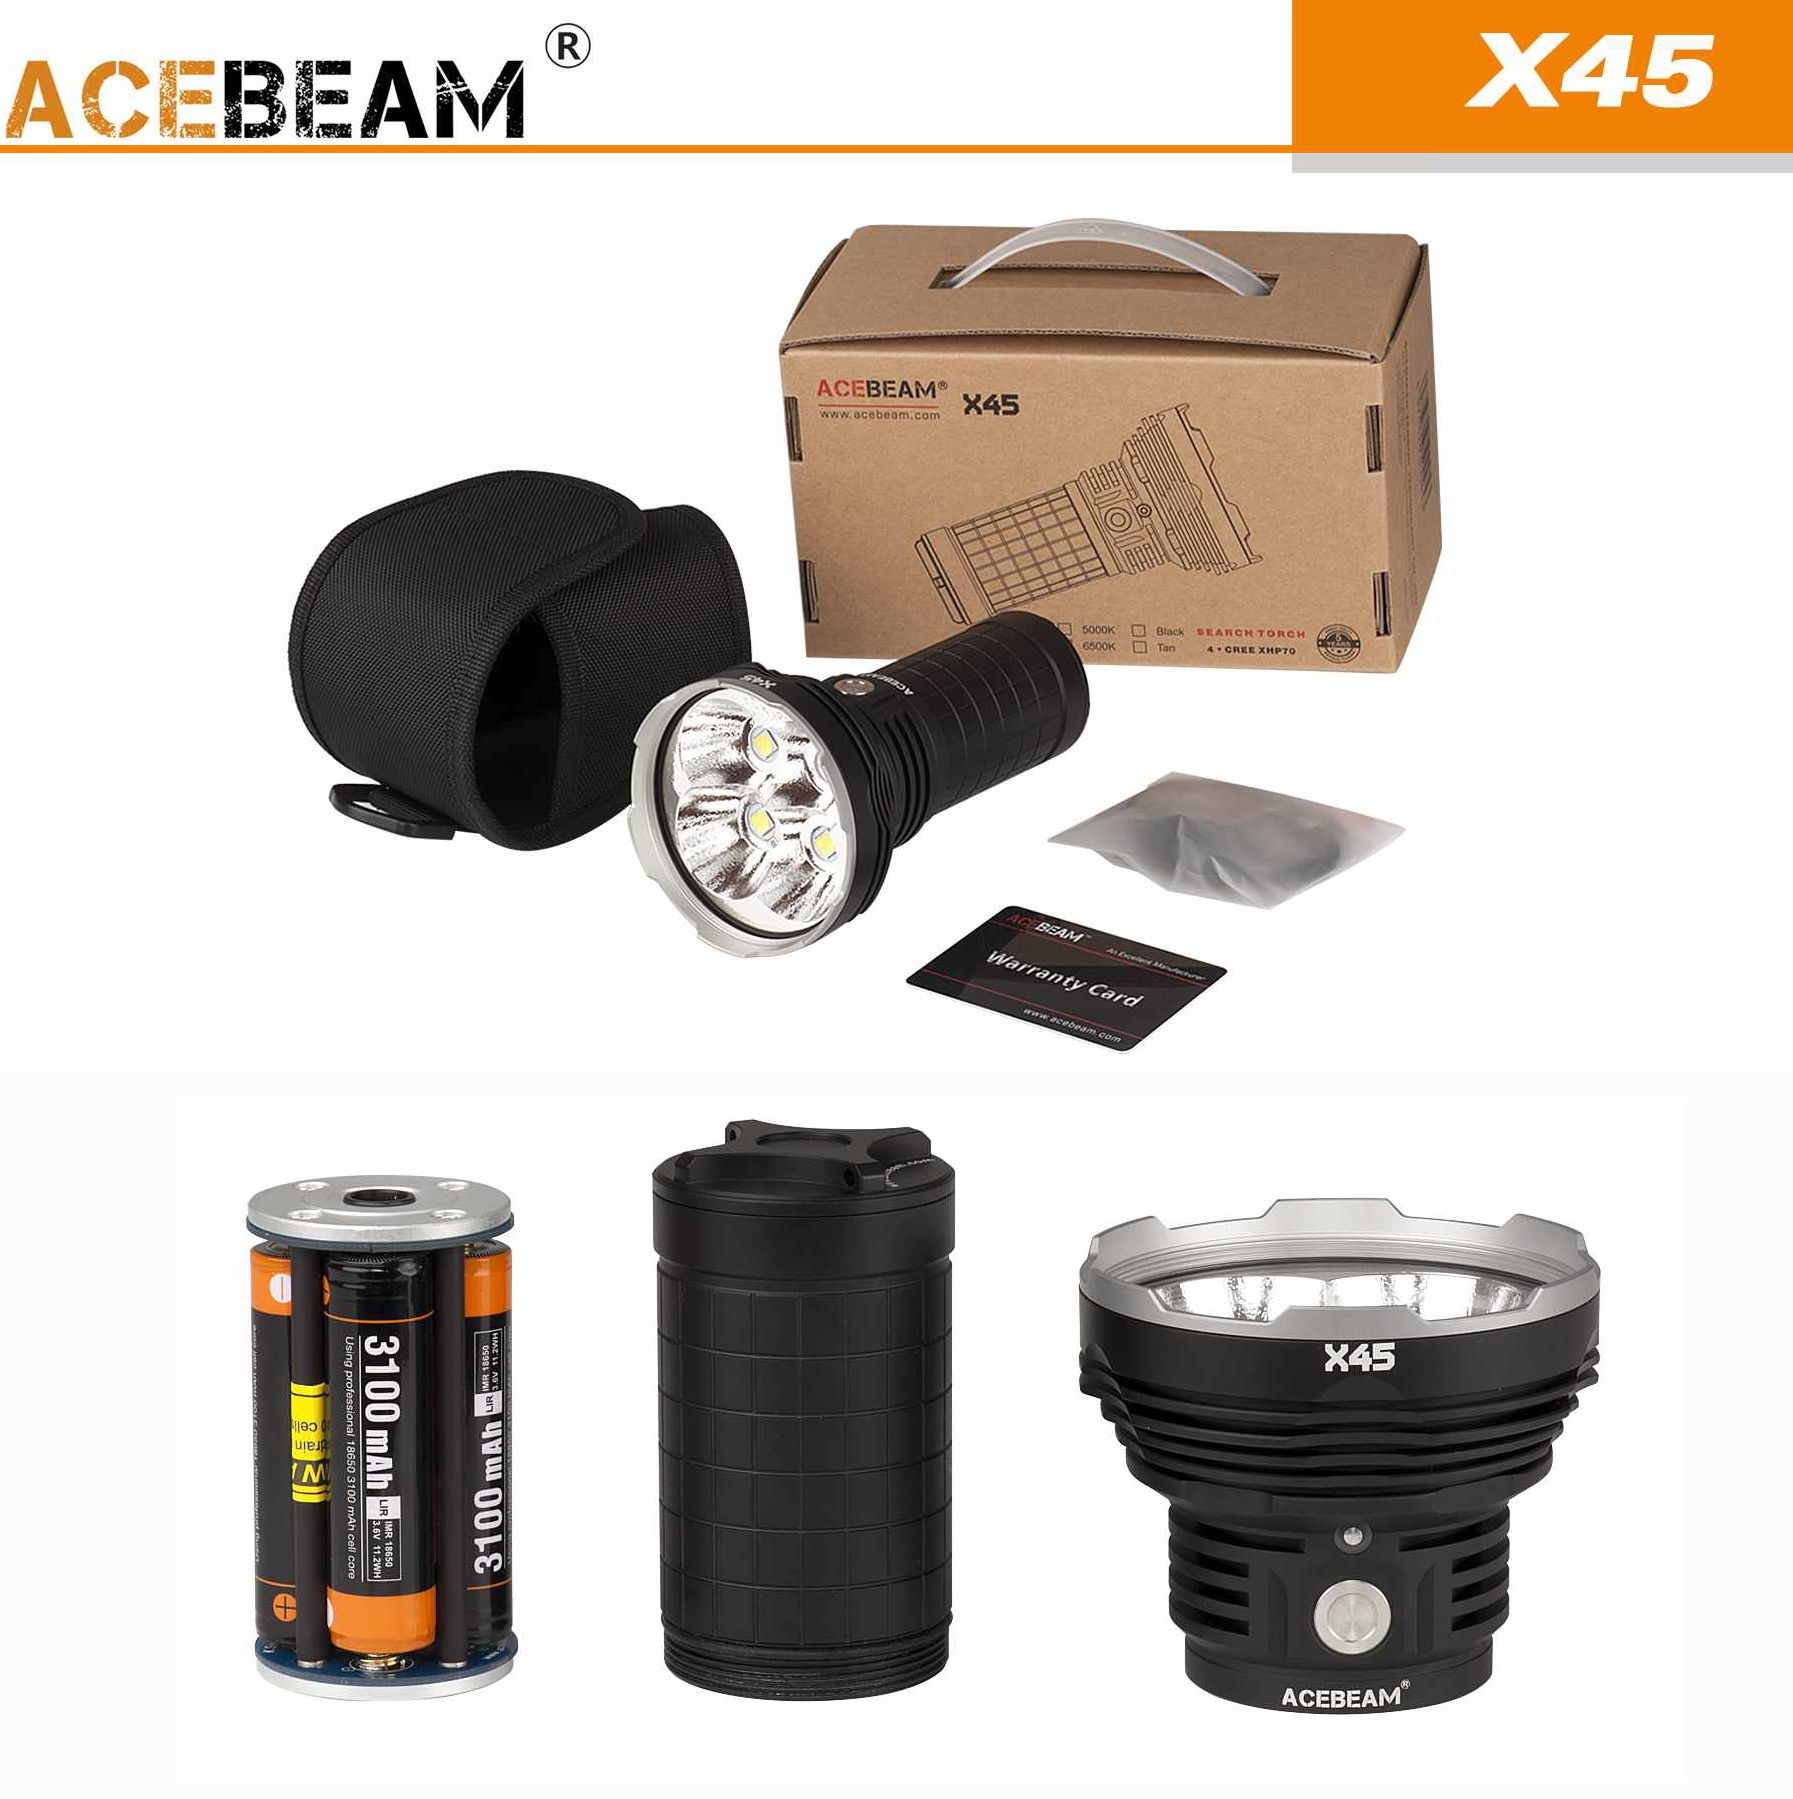 acebeam pack x45 luxury